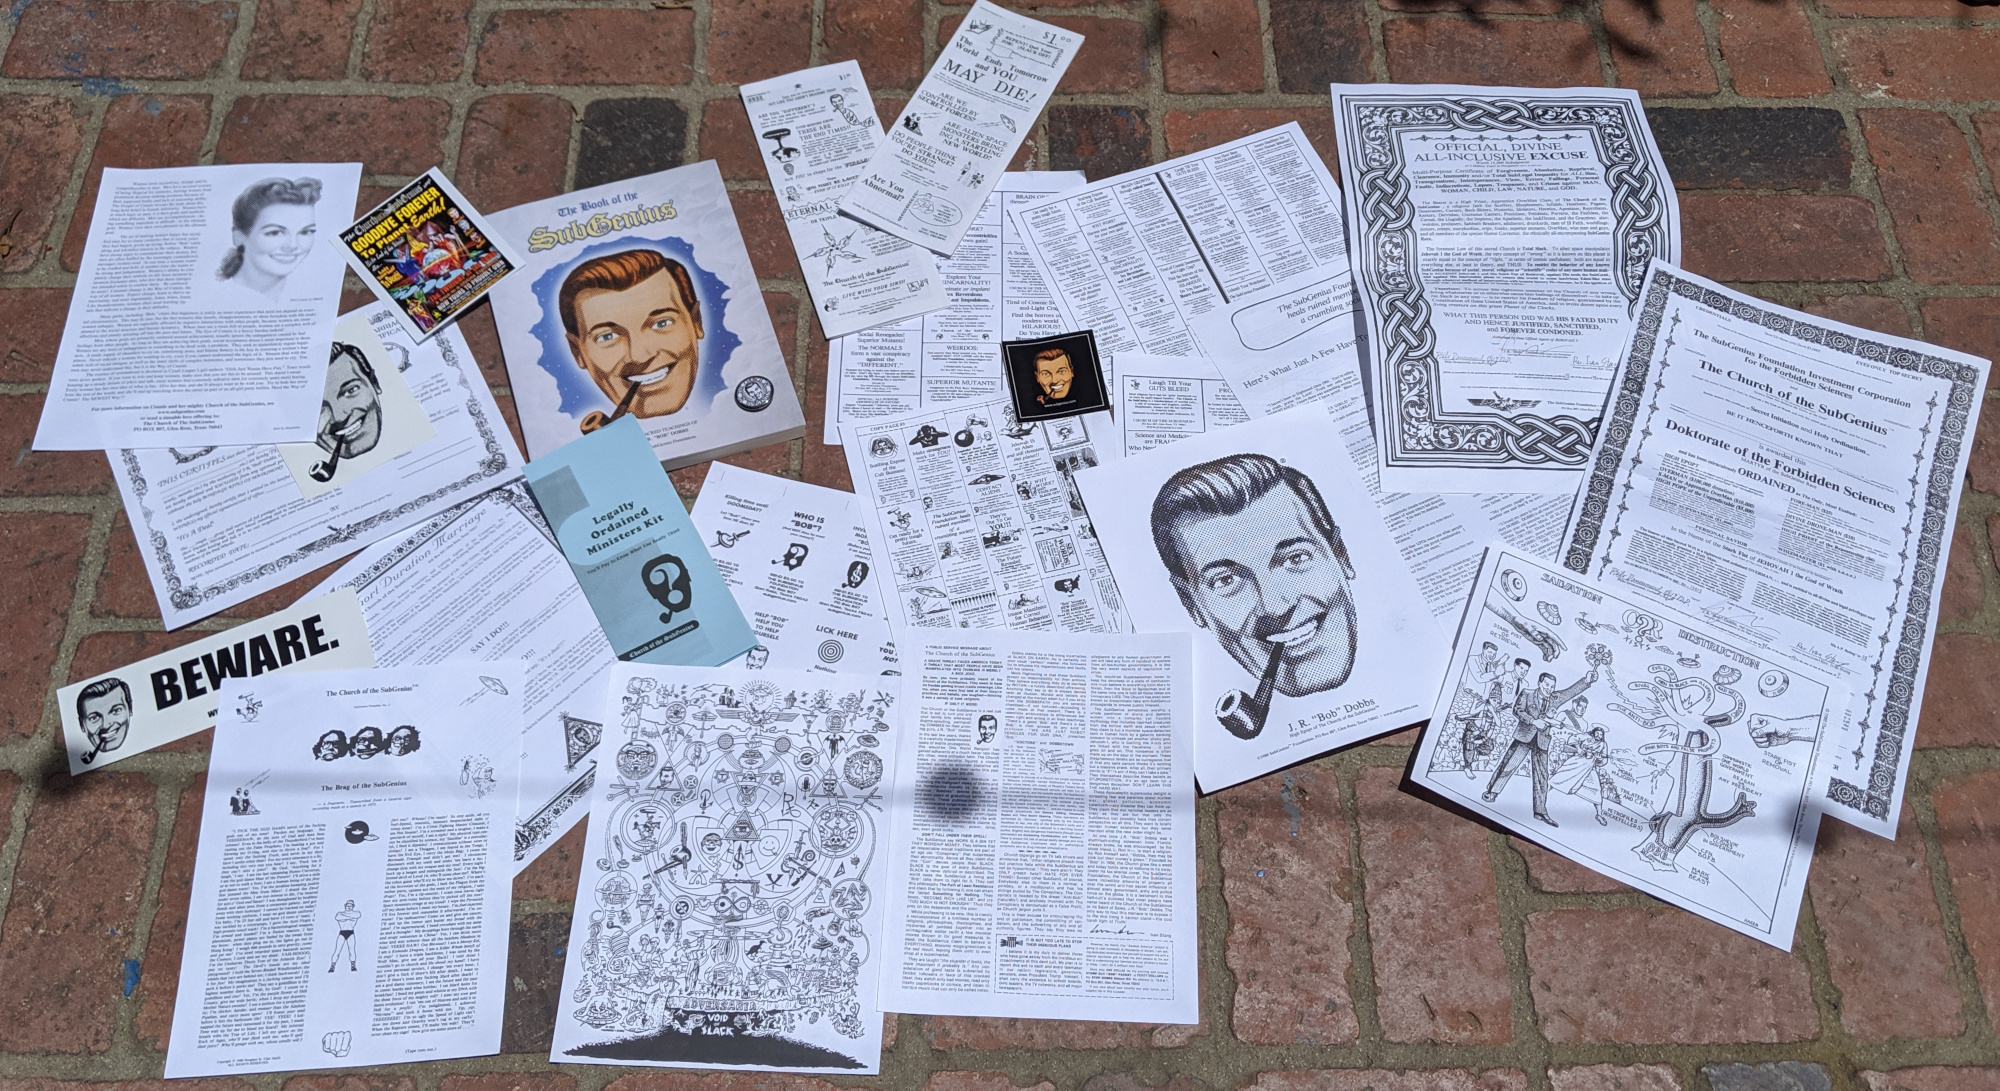 The Church of the Subgenius's Salvation Pack is the best $35 I ever